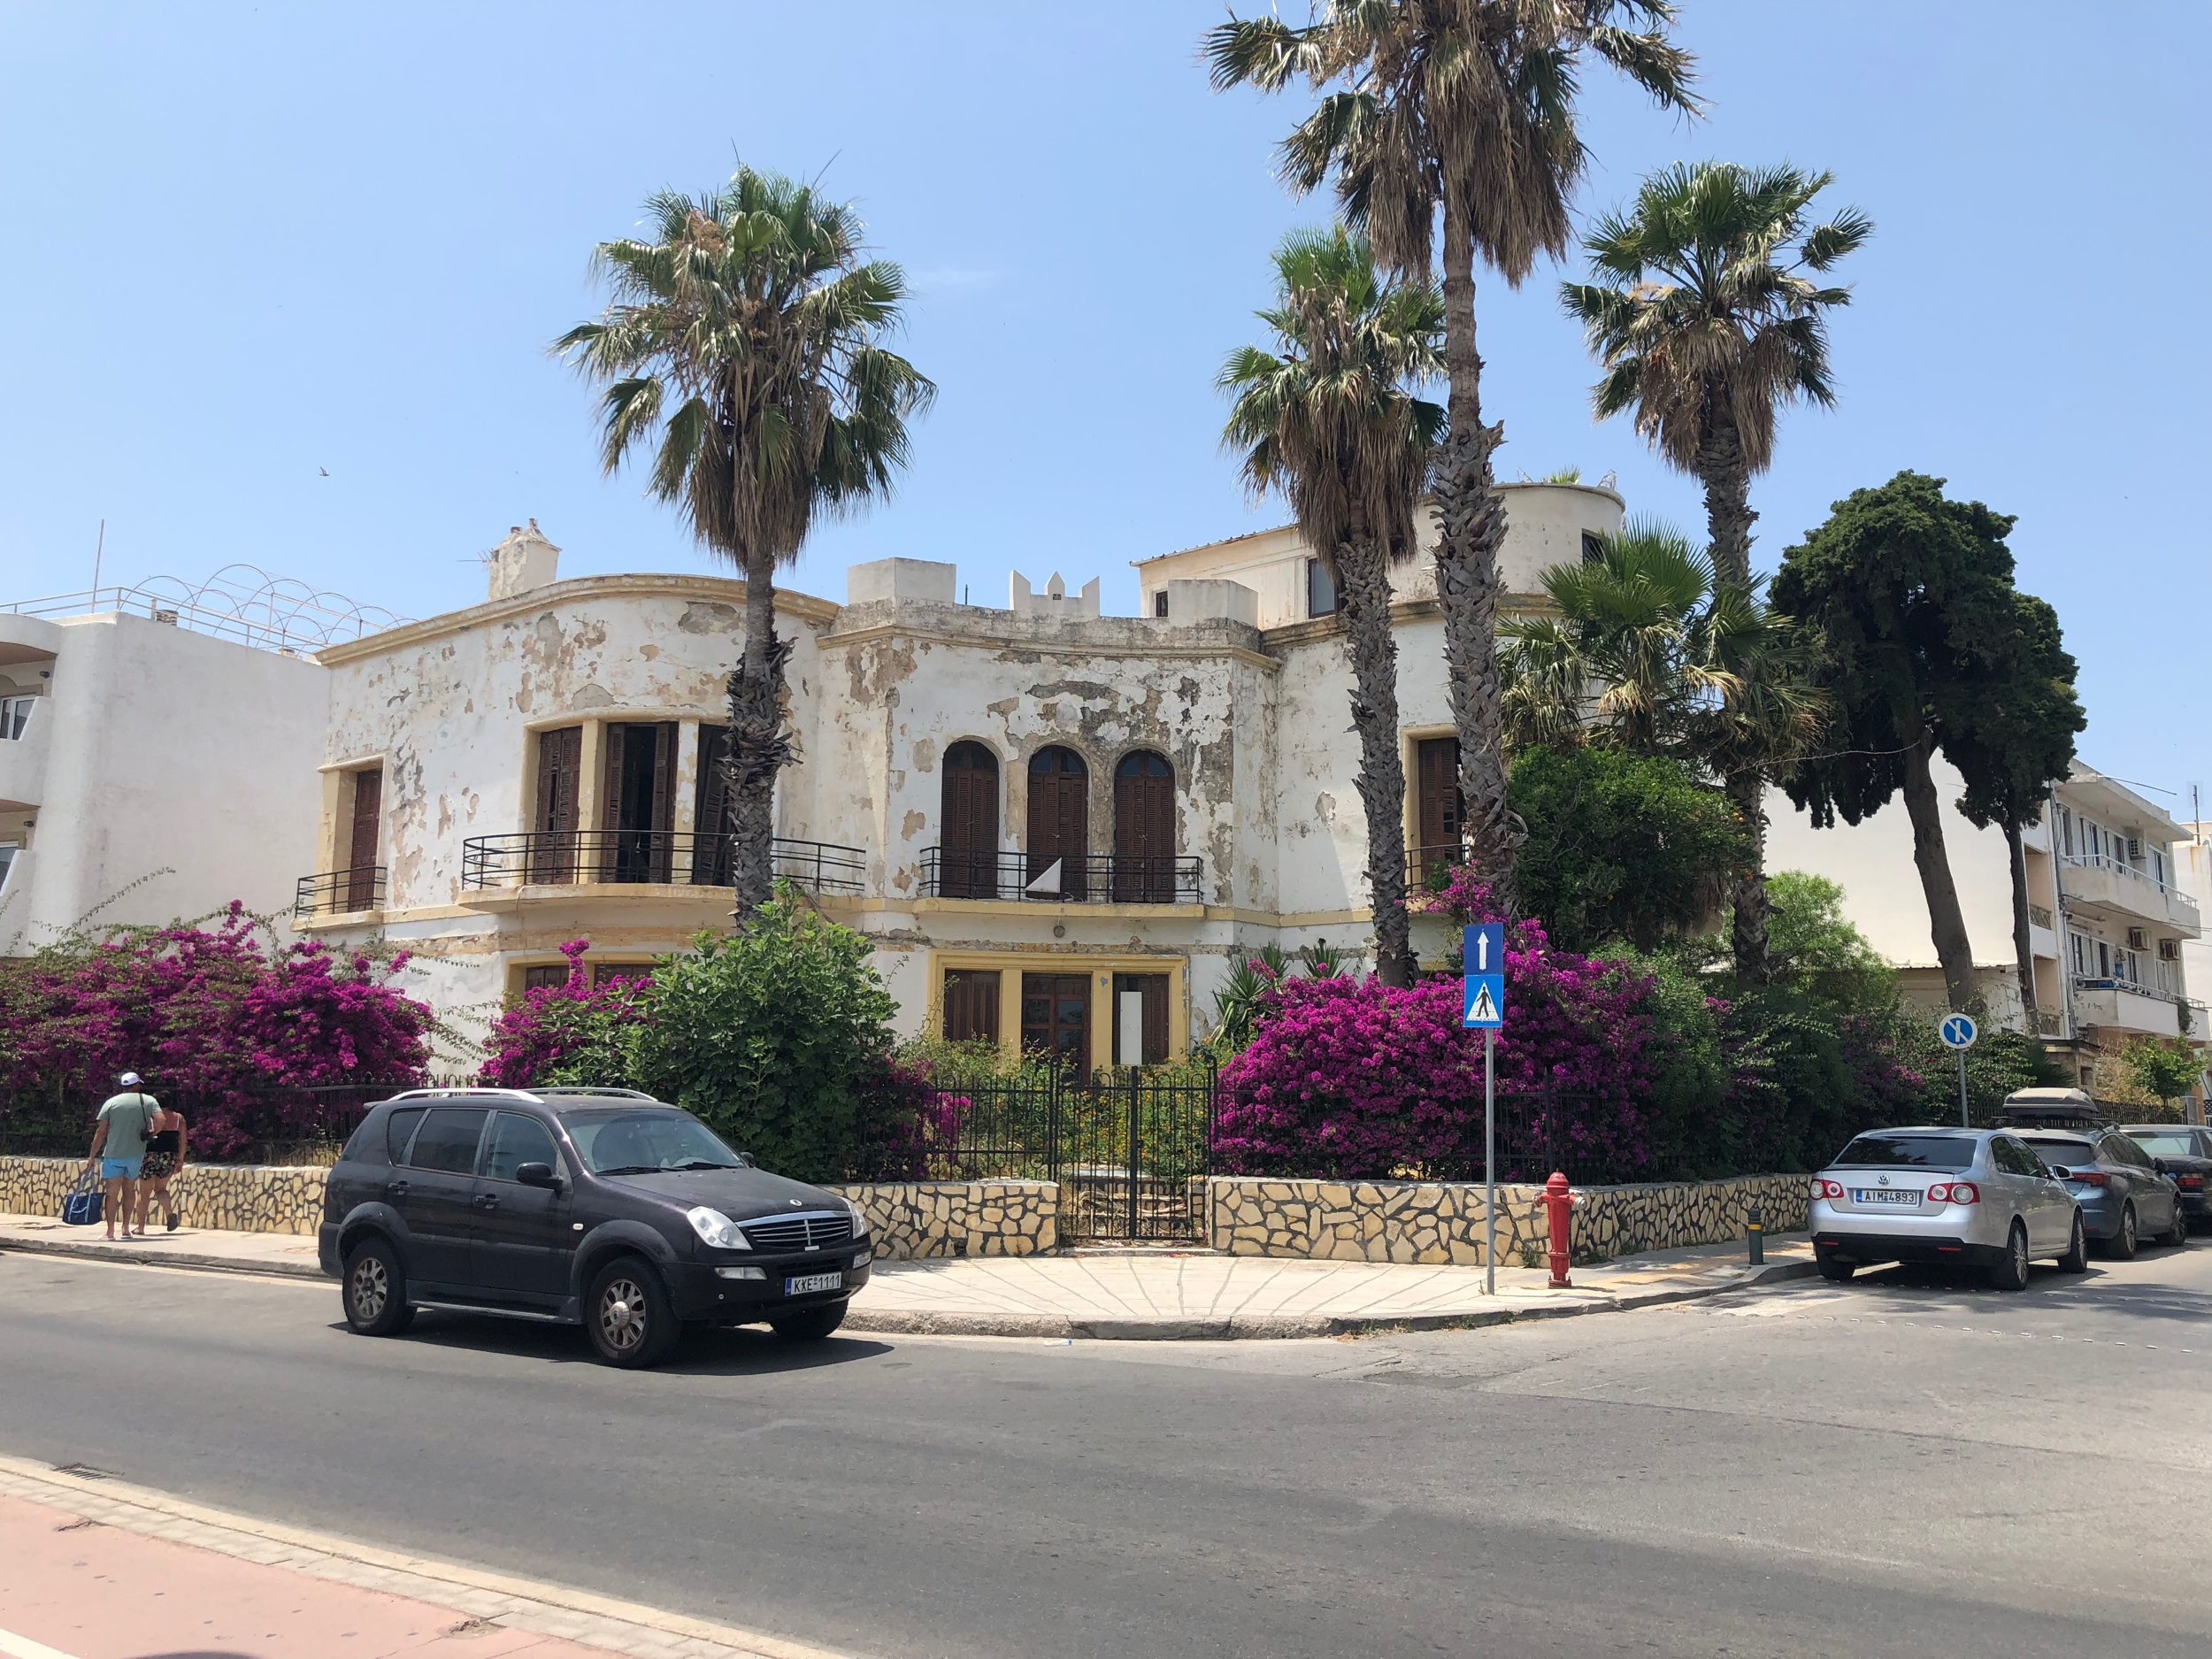 Abandoned house in Kos